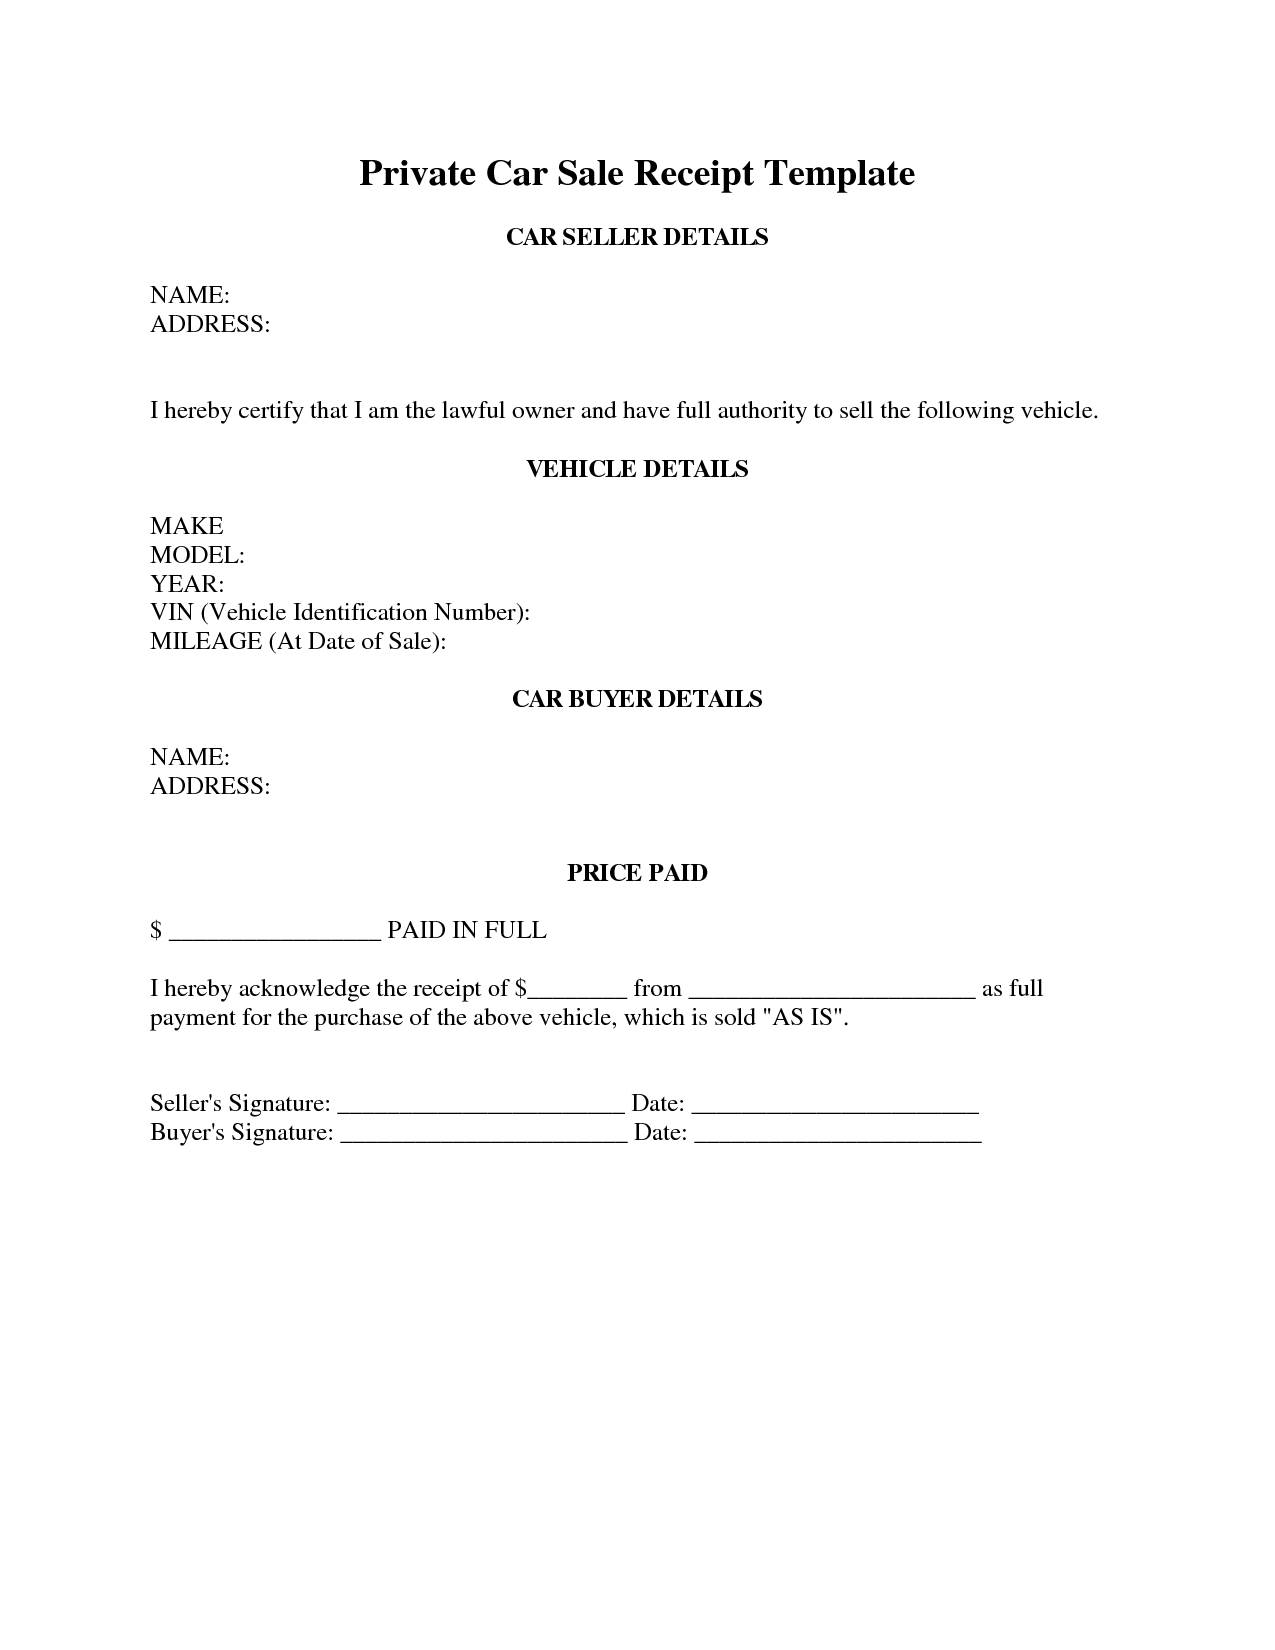 Car Sale Receipt Template Qld Pdf